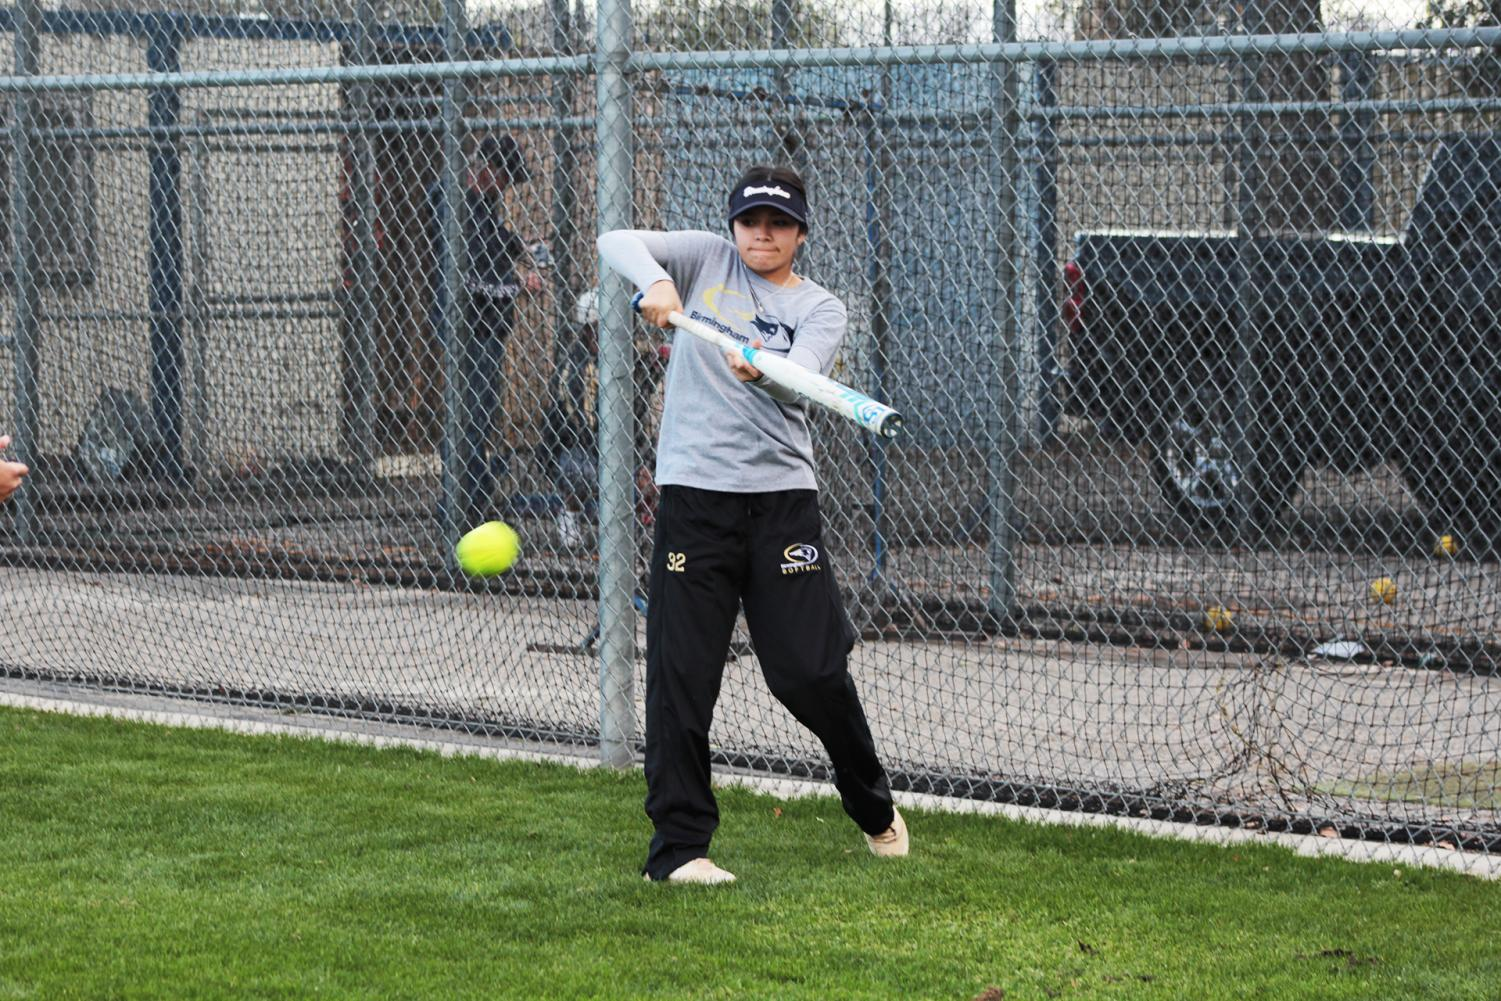 Sophomore Nattaly Villaseñor practices bunting during practice in the softball field.